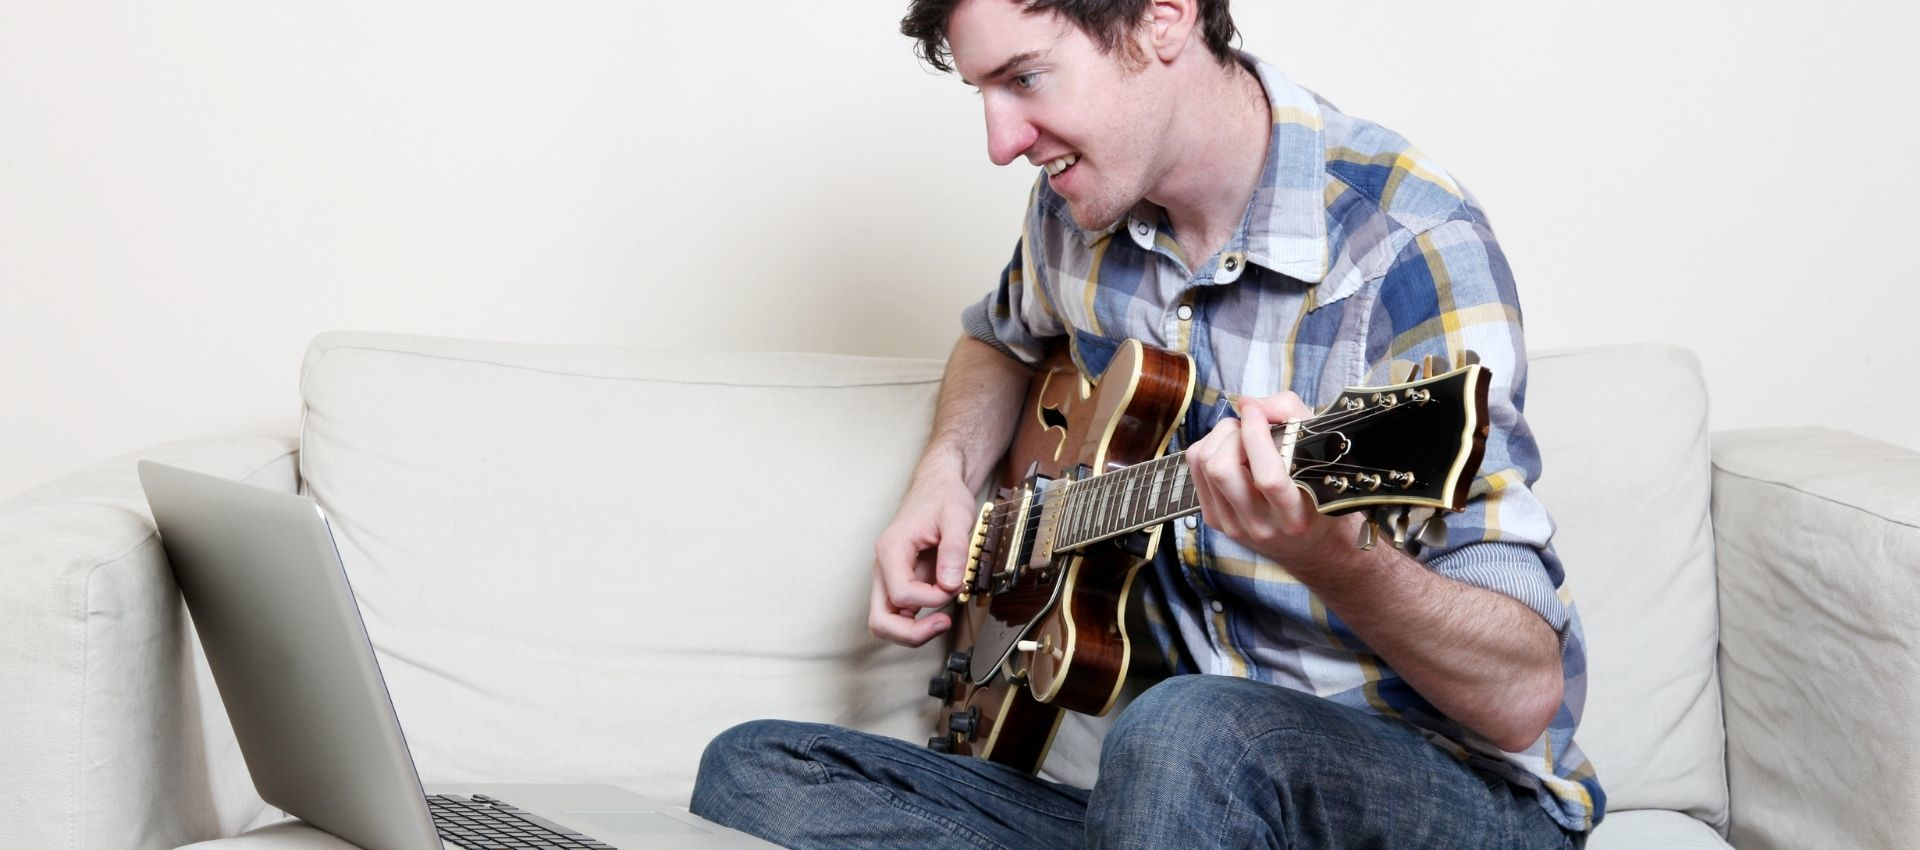 LL Blog How To Learn From Video Guitar Lessons More Effectively